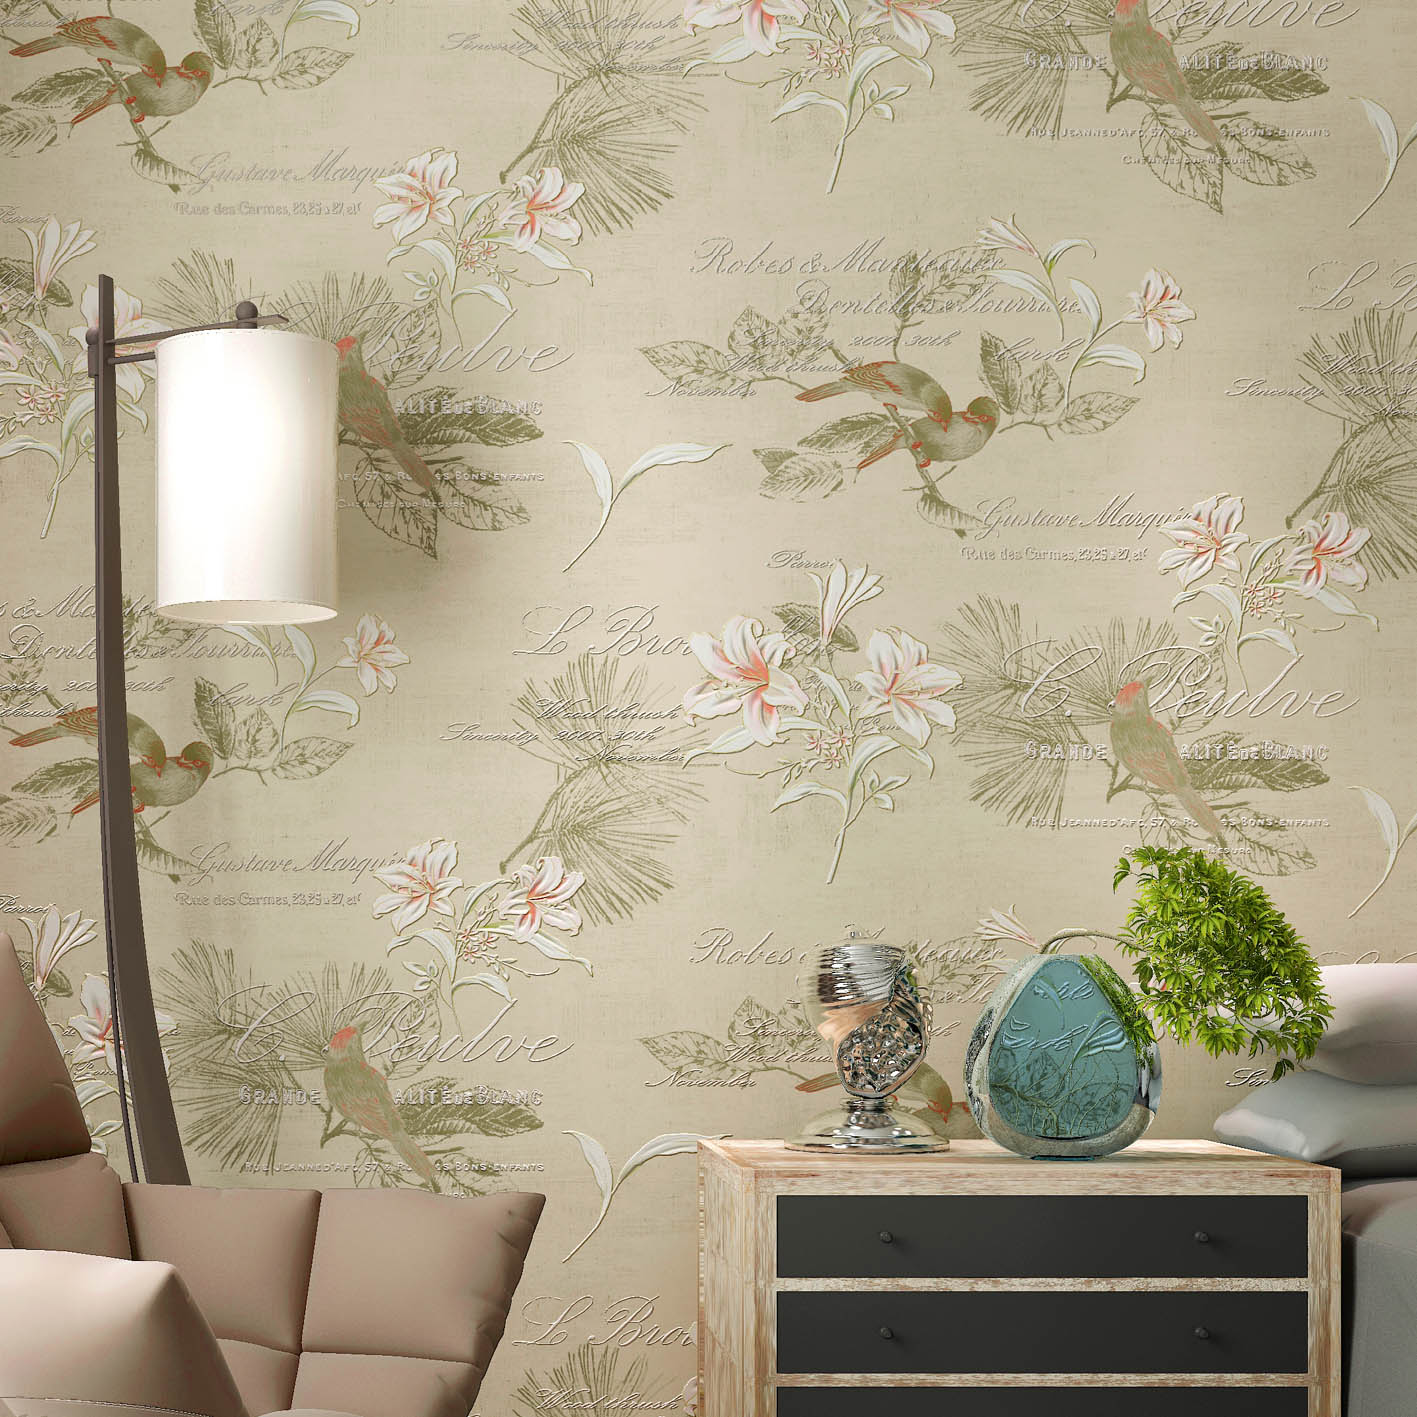 0.53x10m hand - painted flowers and birds pattern non - woven wallpaper living room bedroom study room wedding shop  wallpaper0.53x10m hand - painted flowers and birds pattern non - woven wallpaper living room bedroom study room wedding shop  wallpaper